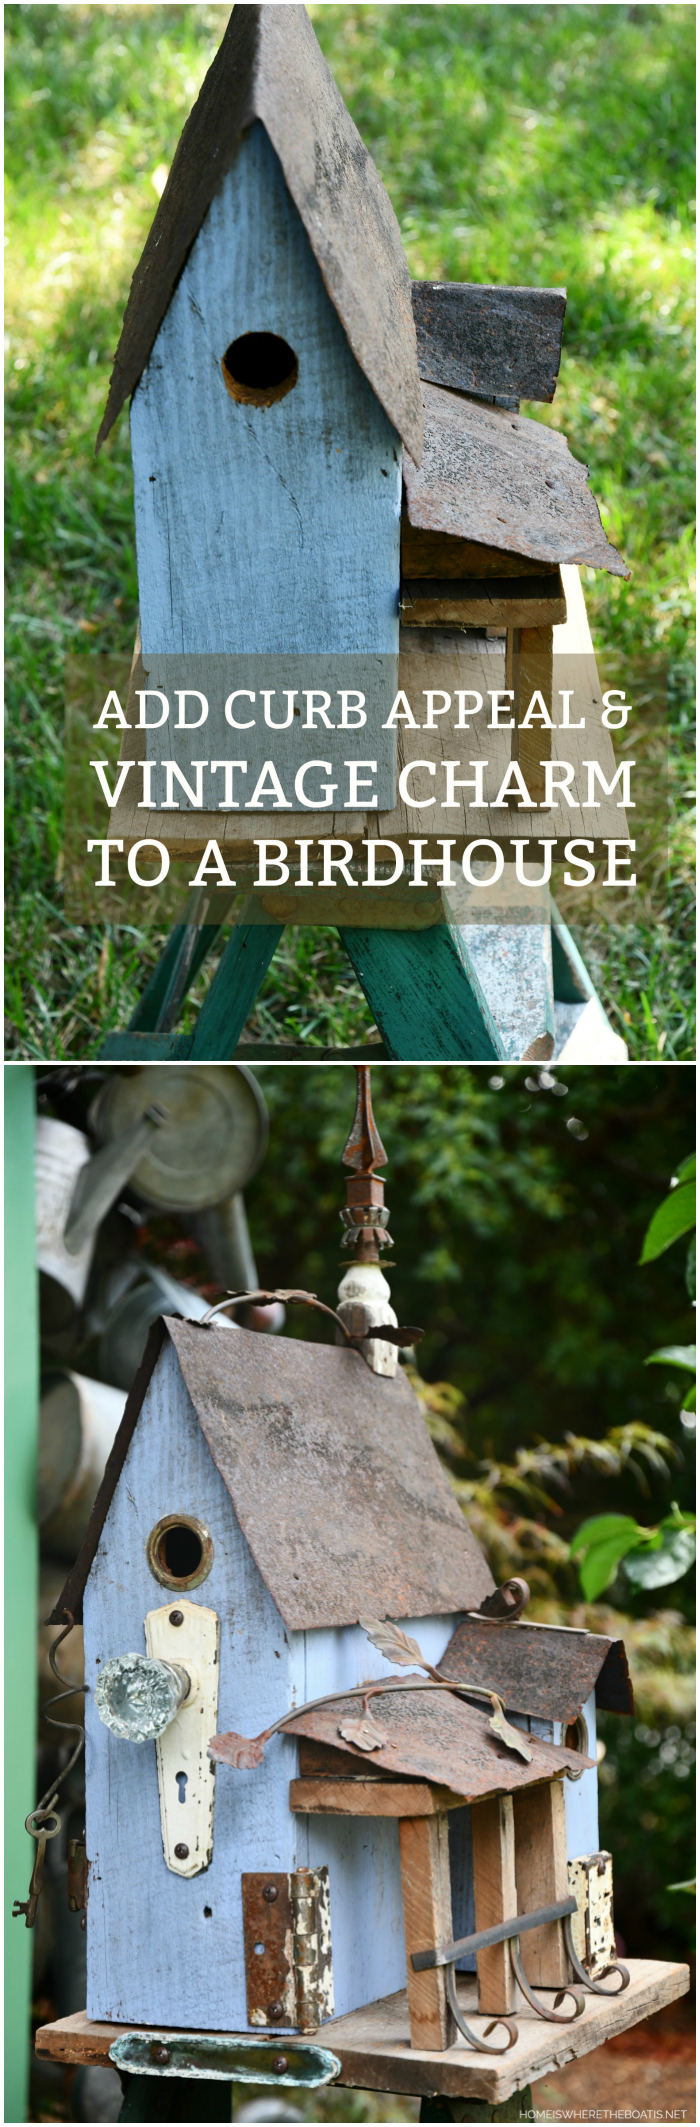 How To Add Curb Appeal & Vintage Charm To A Birdhouse | ©homeiswheretheboatis.net #diy #repurpose #craft #birdhouse #vintage